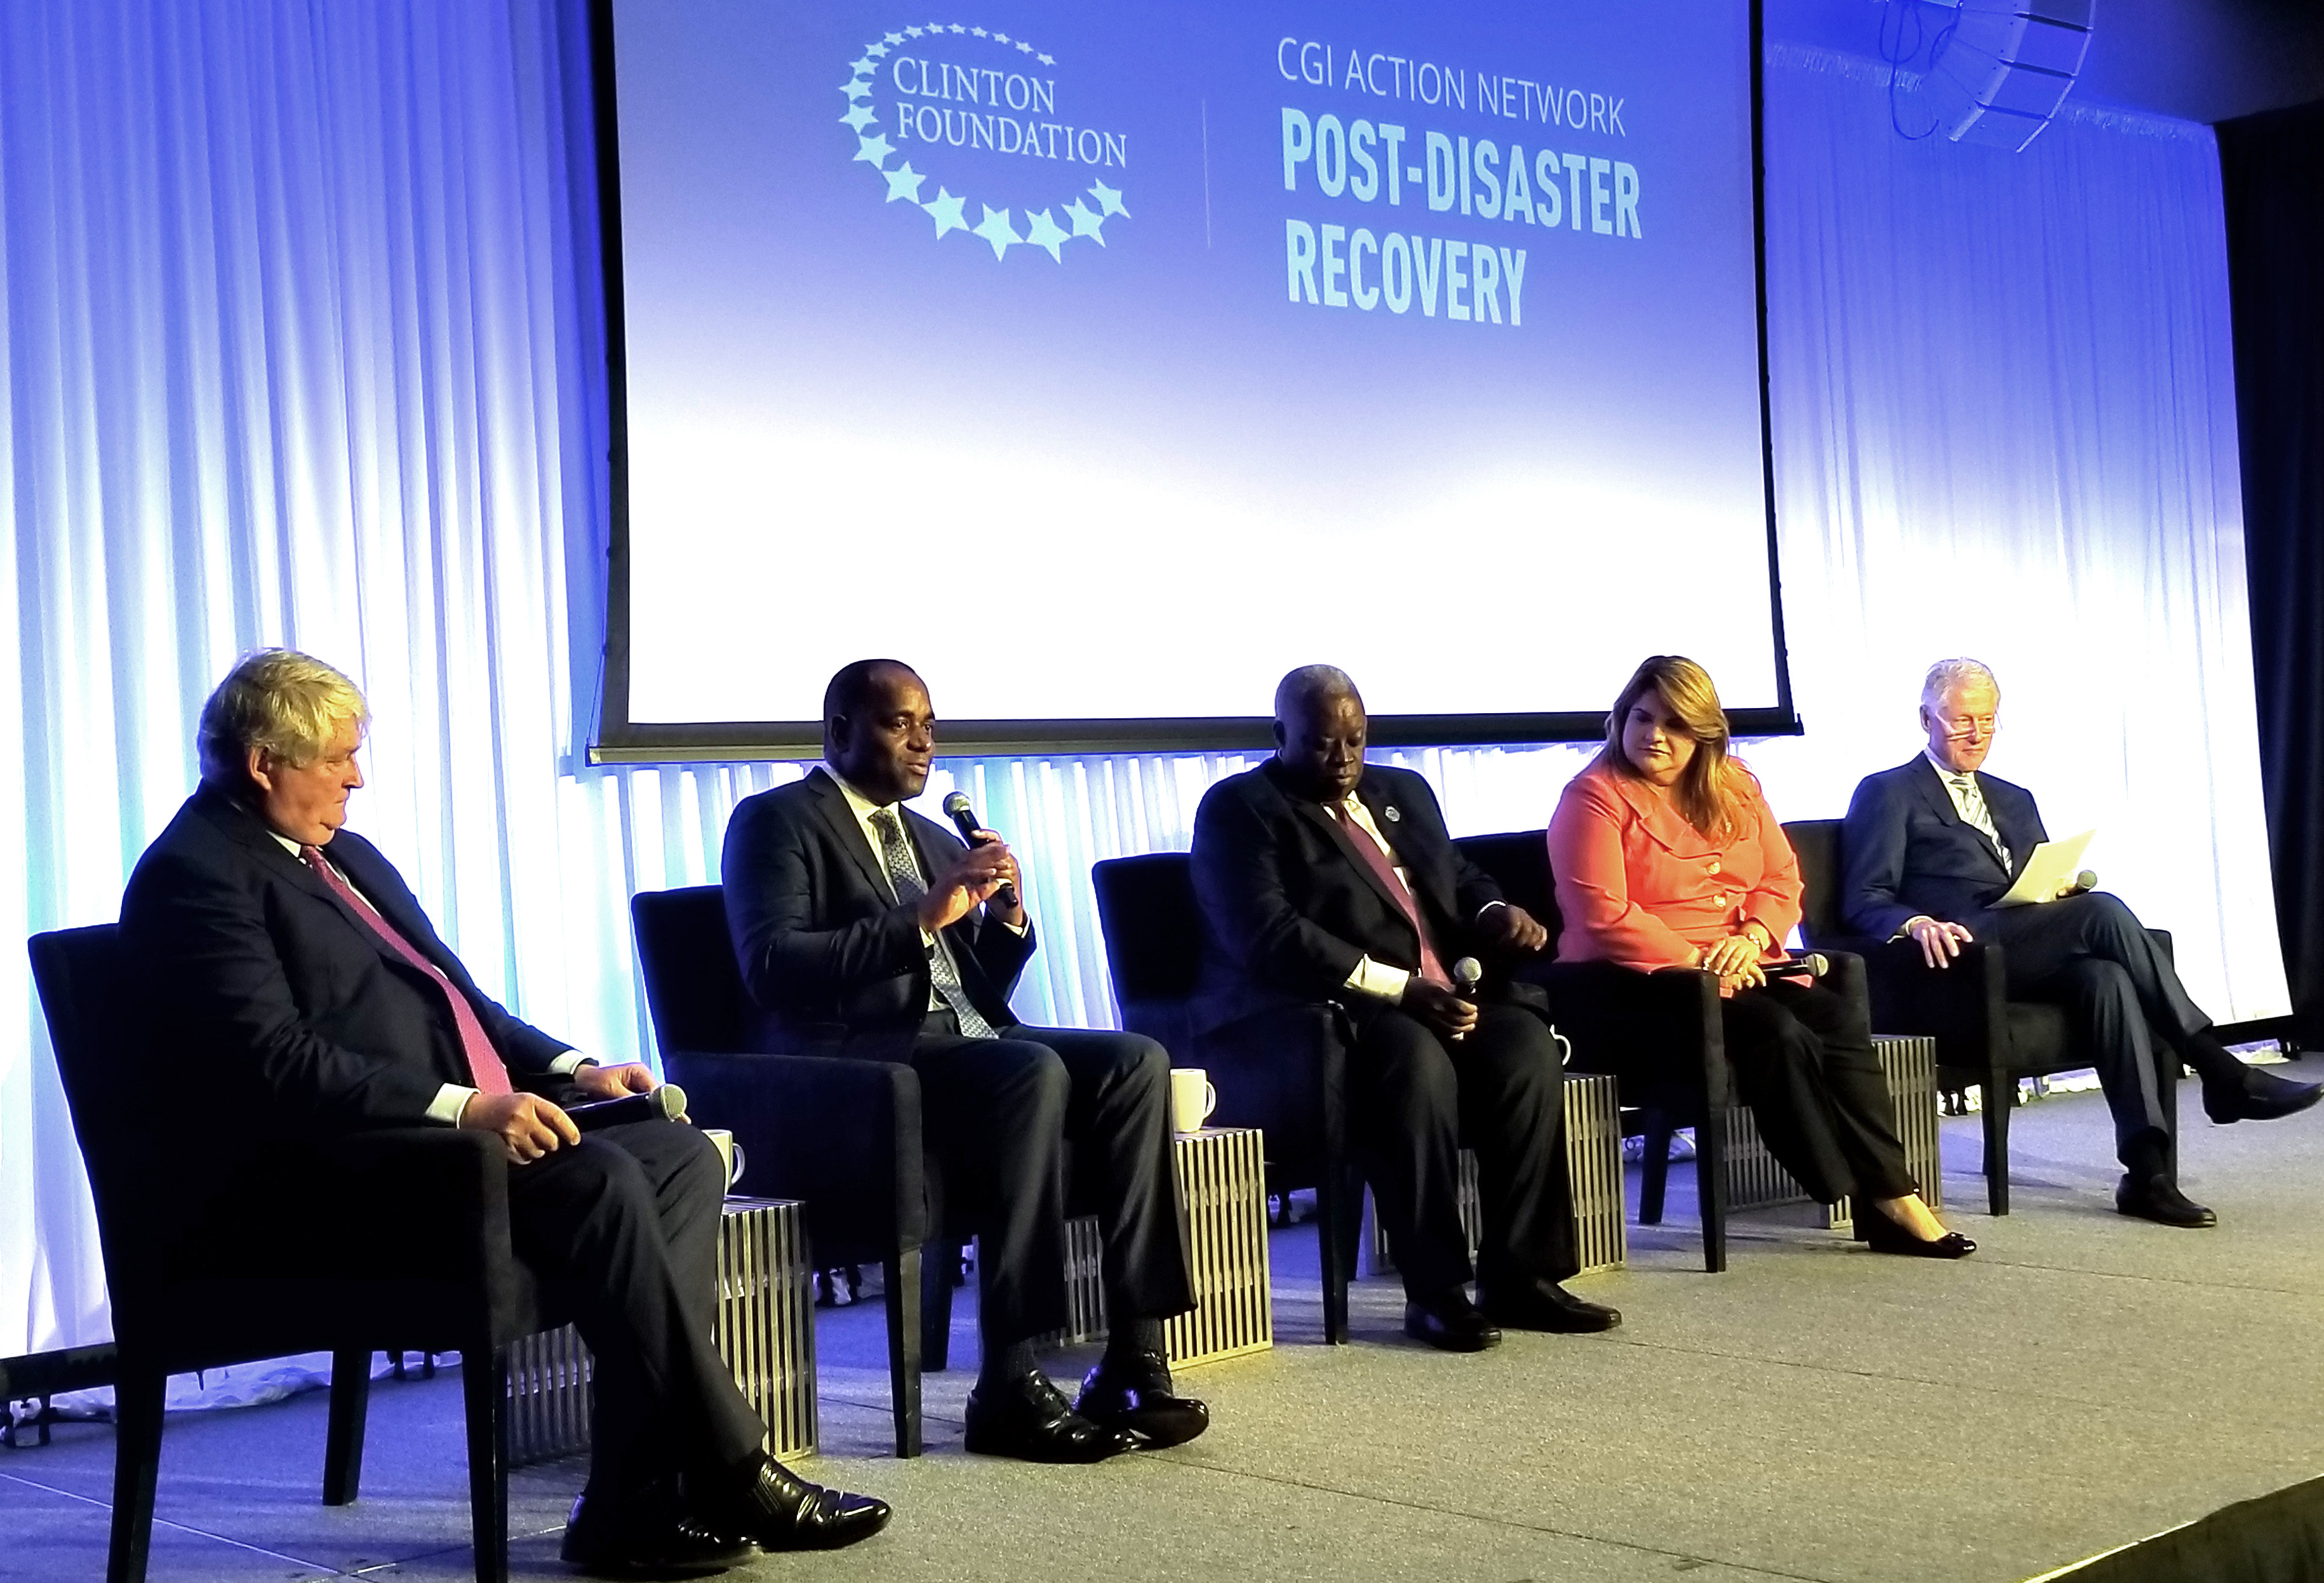 Photo of Clinton Global Action Network on post-disaster recovery launched with CARICOM participation